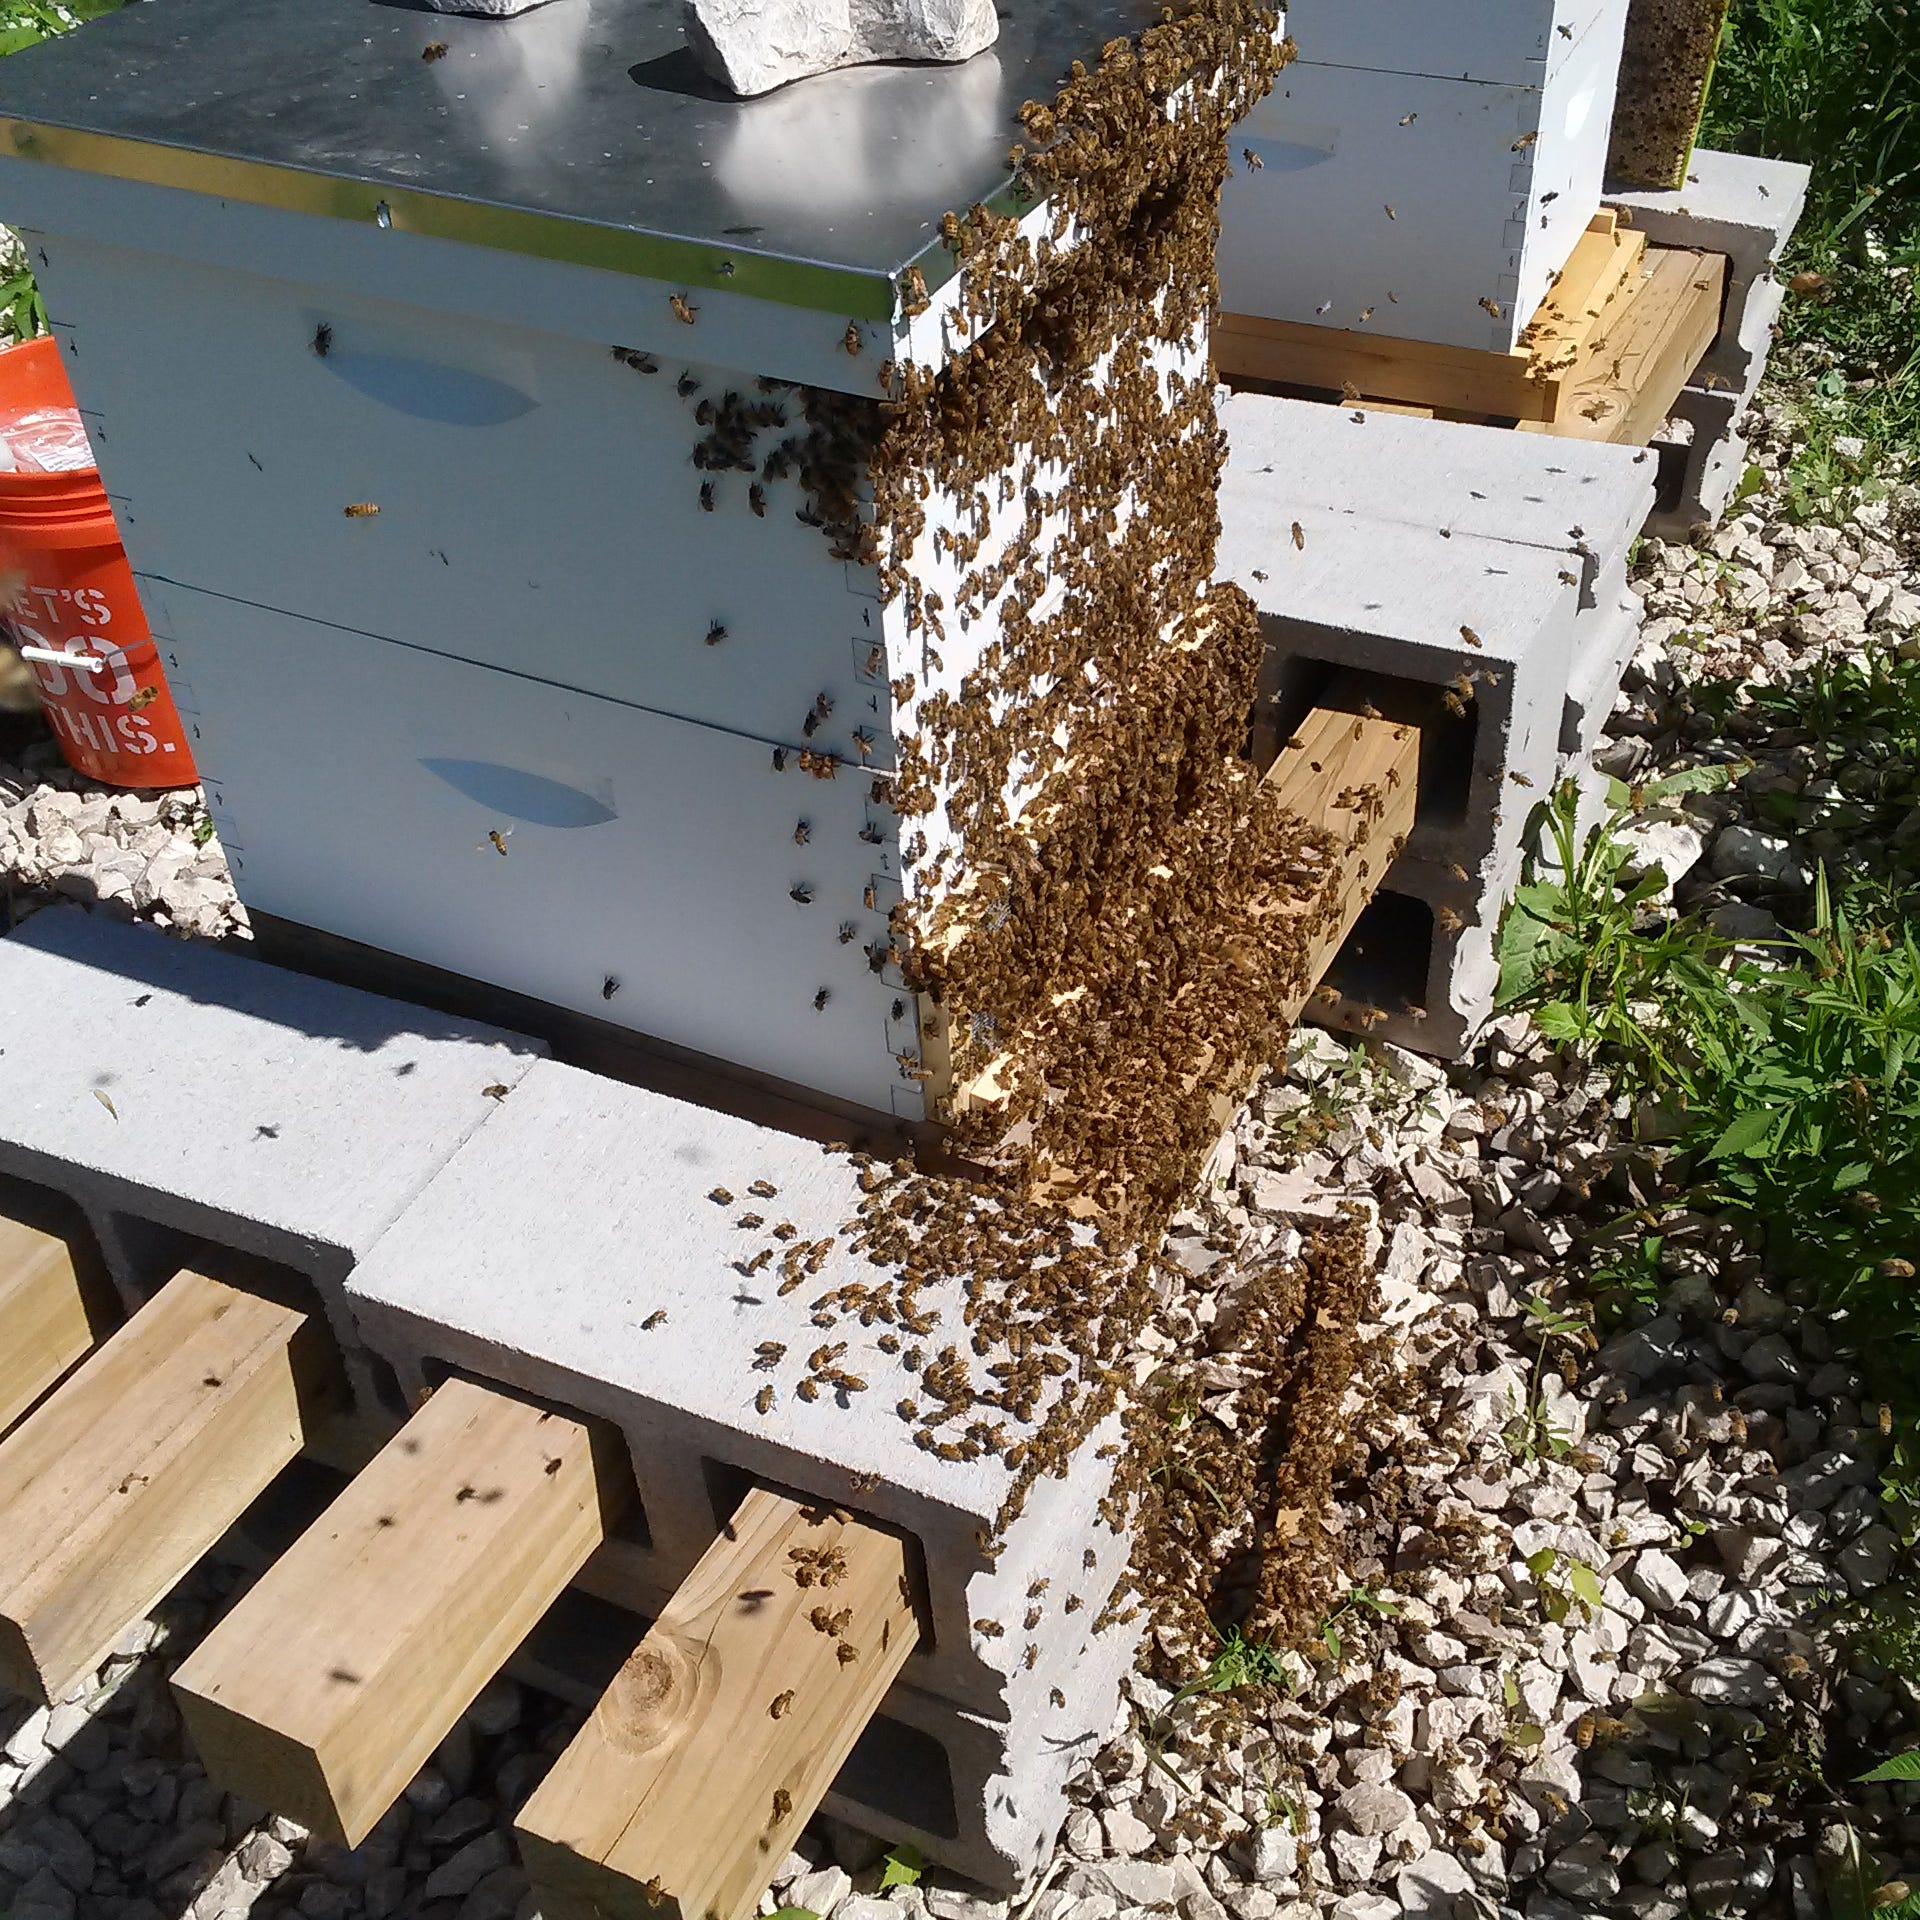 So you want to be a beekeeper? You're in for a wild ride before you get your sweet reward